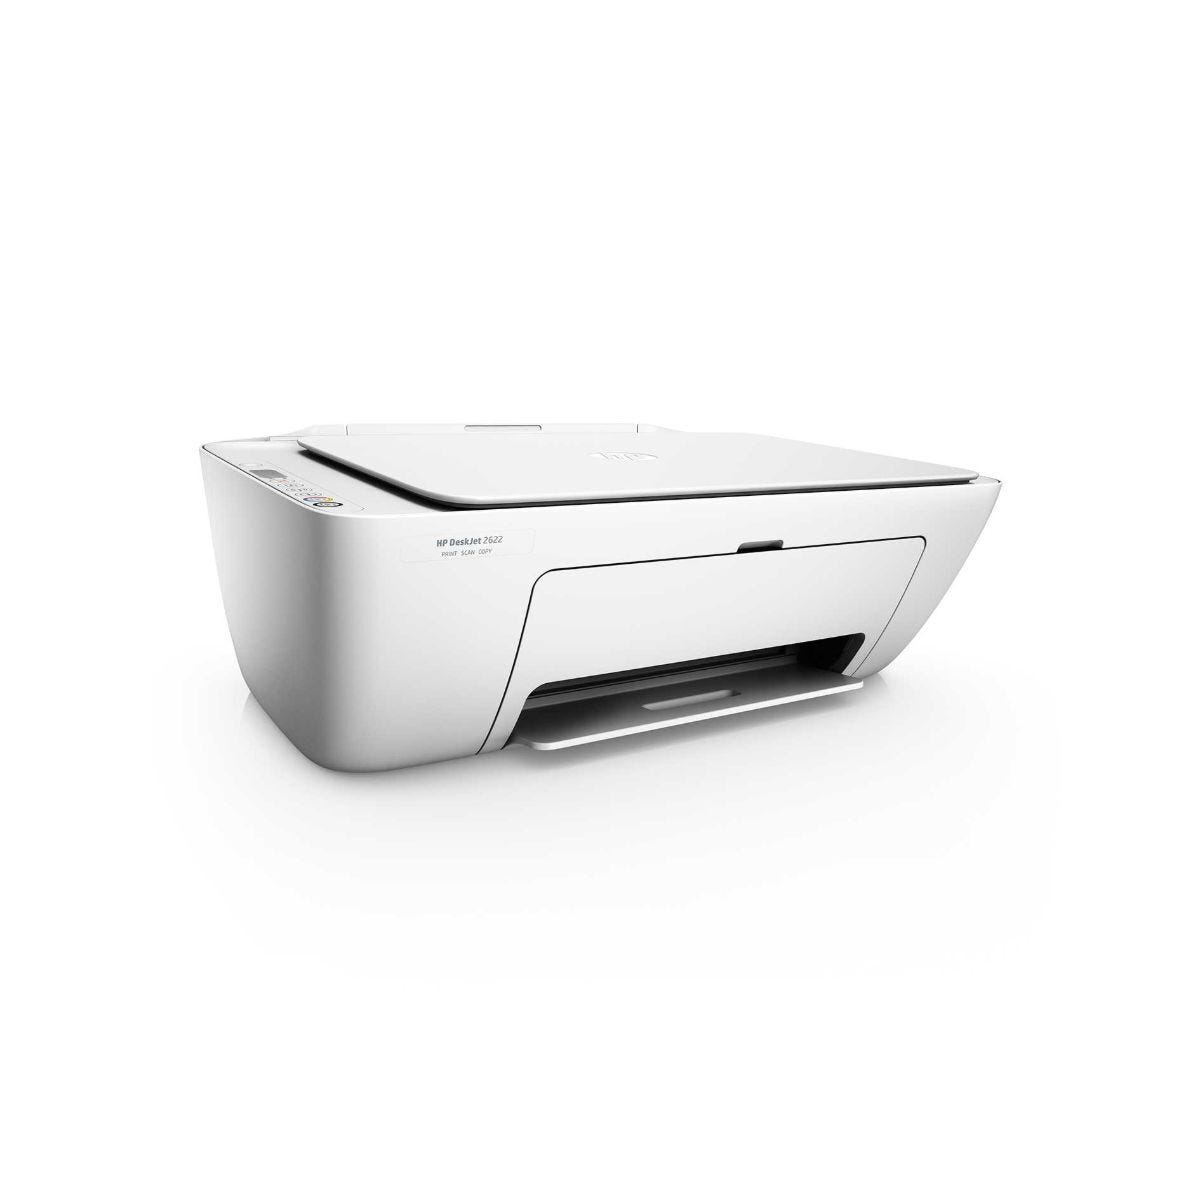 HP Deskjet 2622 All in One Printer with Free 2 Month Instant Ink Trial